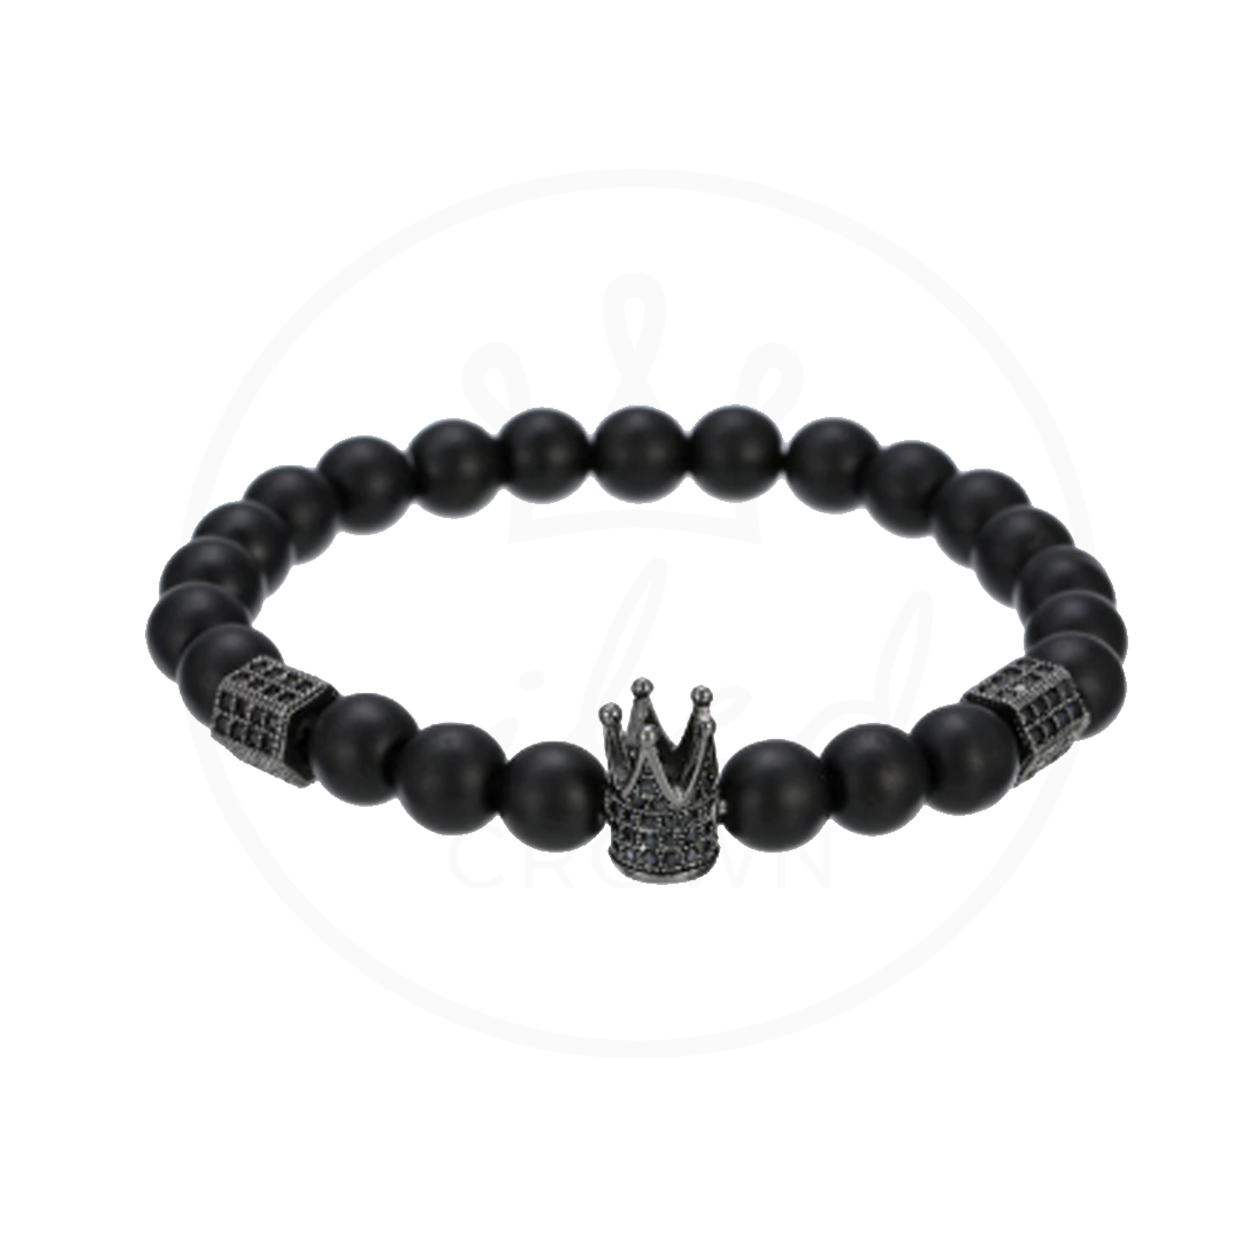 Black Royal Crown Bracelet - Coiled Crown Bracelet